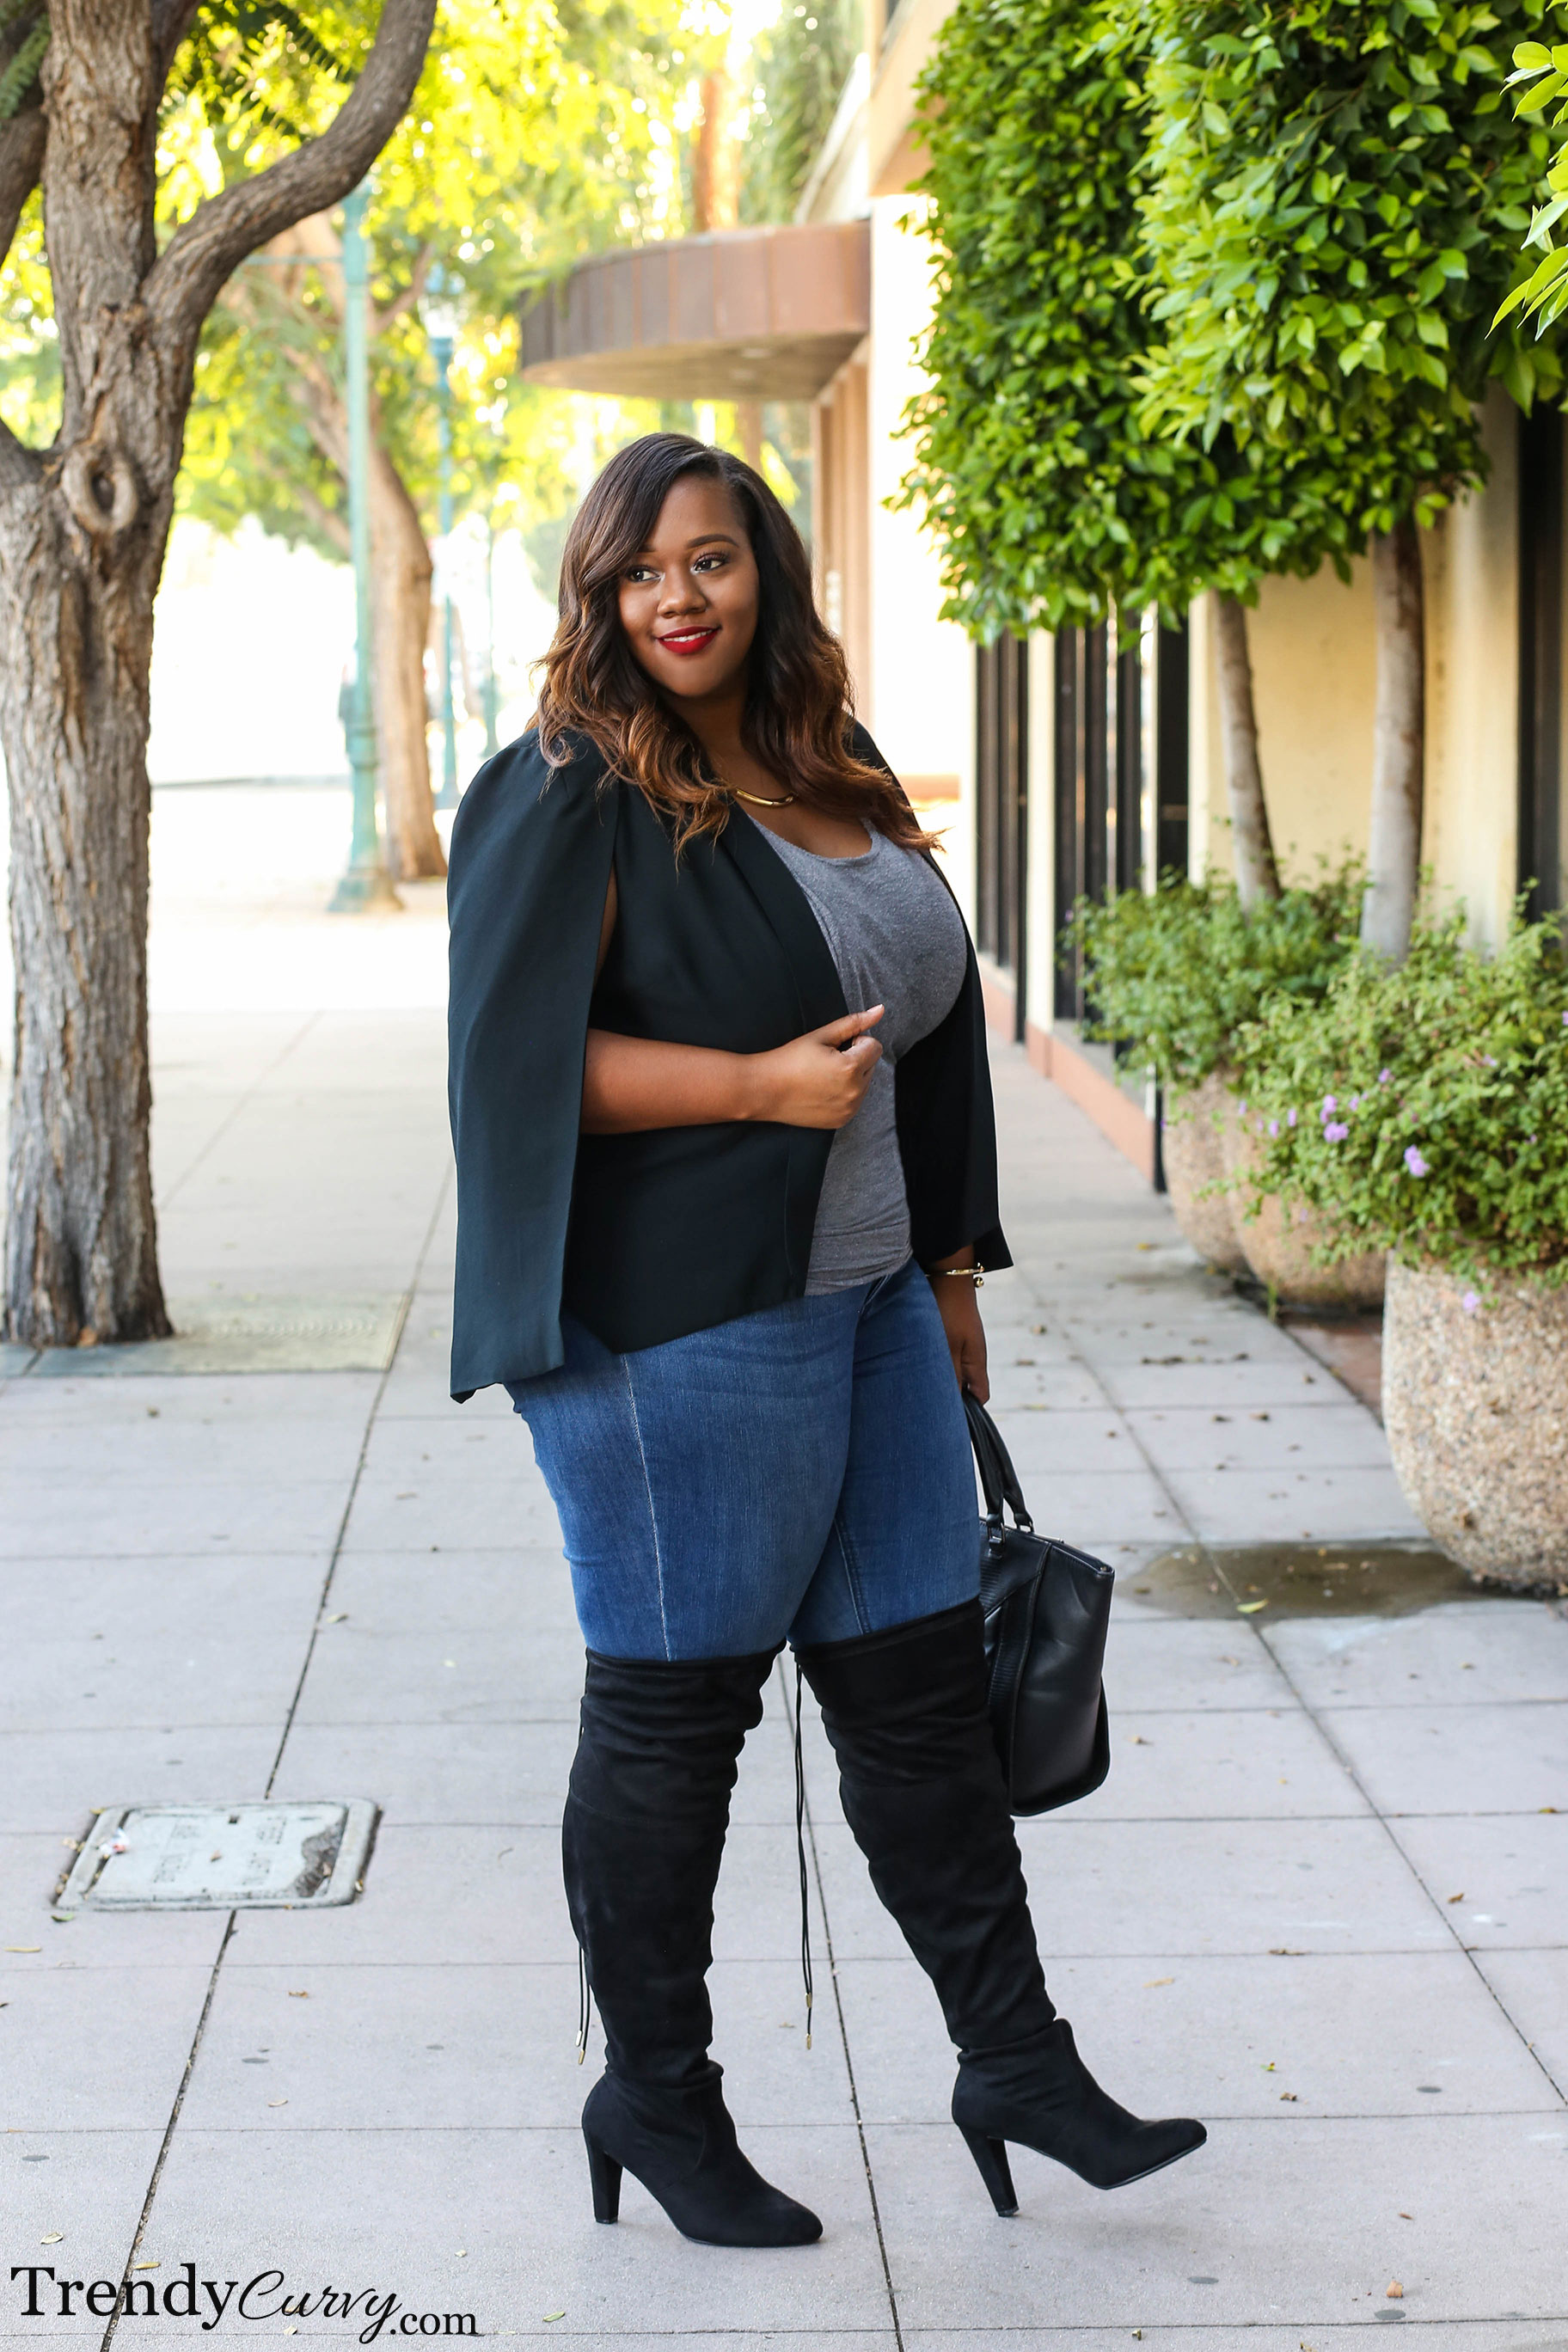 Over The Knee - Trendy CurvyTrendy Curvy